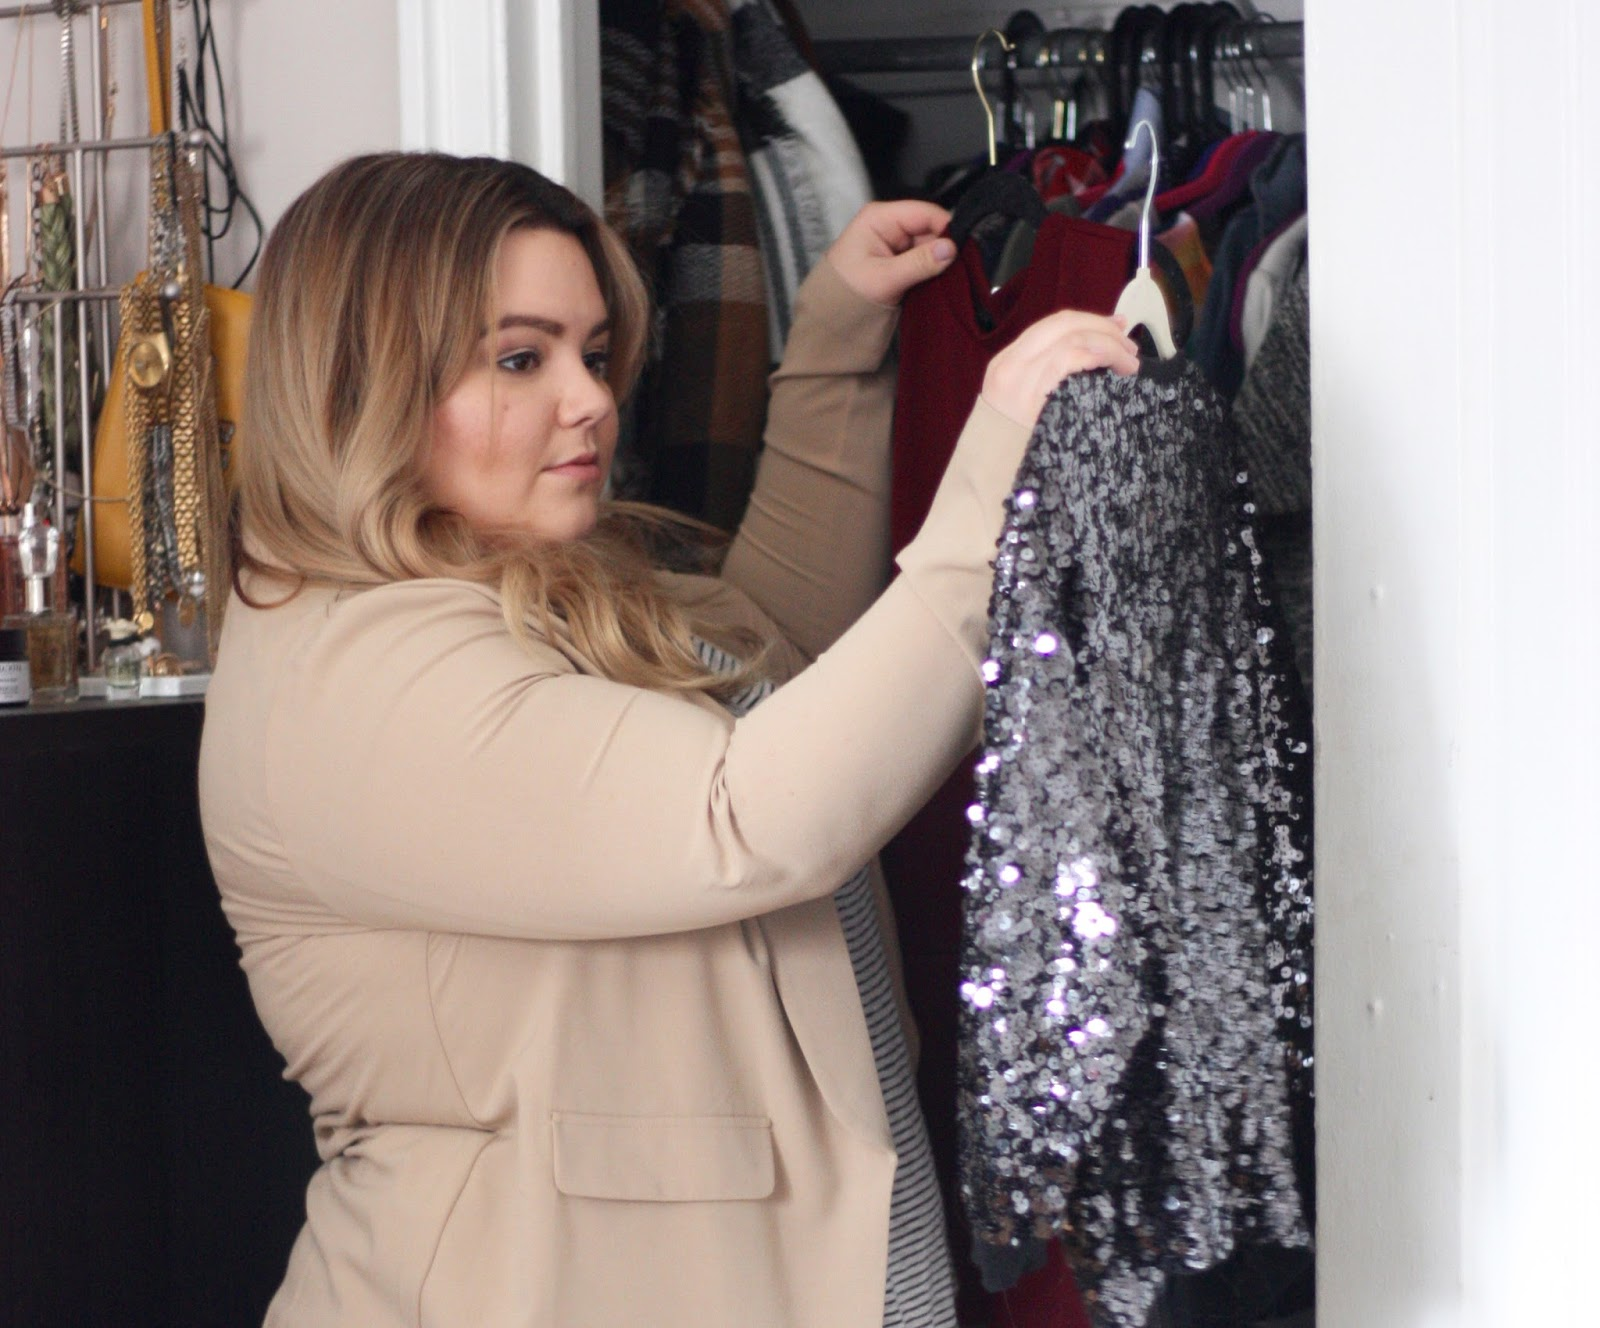 how to organize my closet, color coded closet, clothing storage in chicago, armoire, get my armoire, platos closet, consignment, uber, plus size fashion, natalie craig, chicago blogger, midwest blogger, chicago style